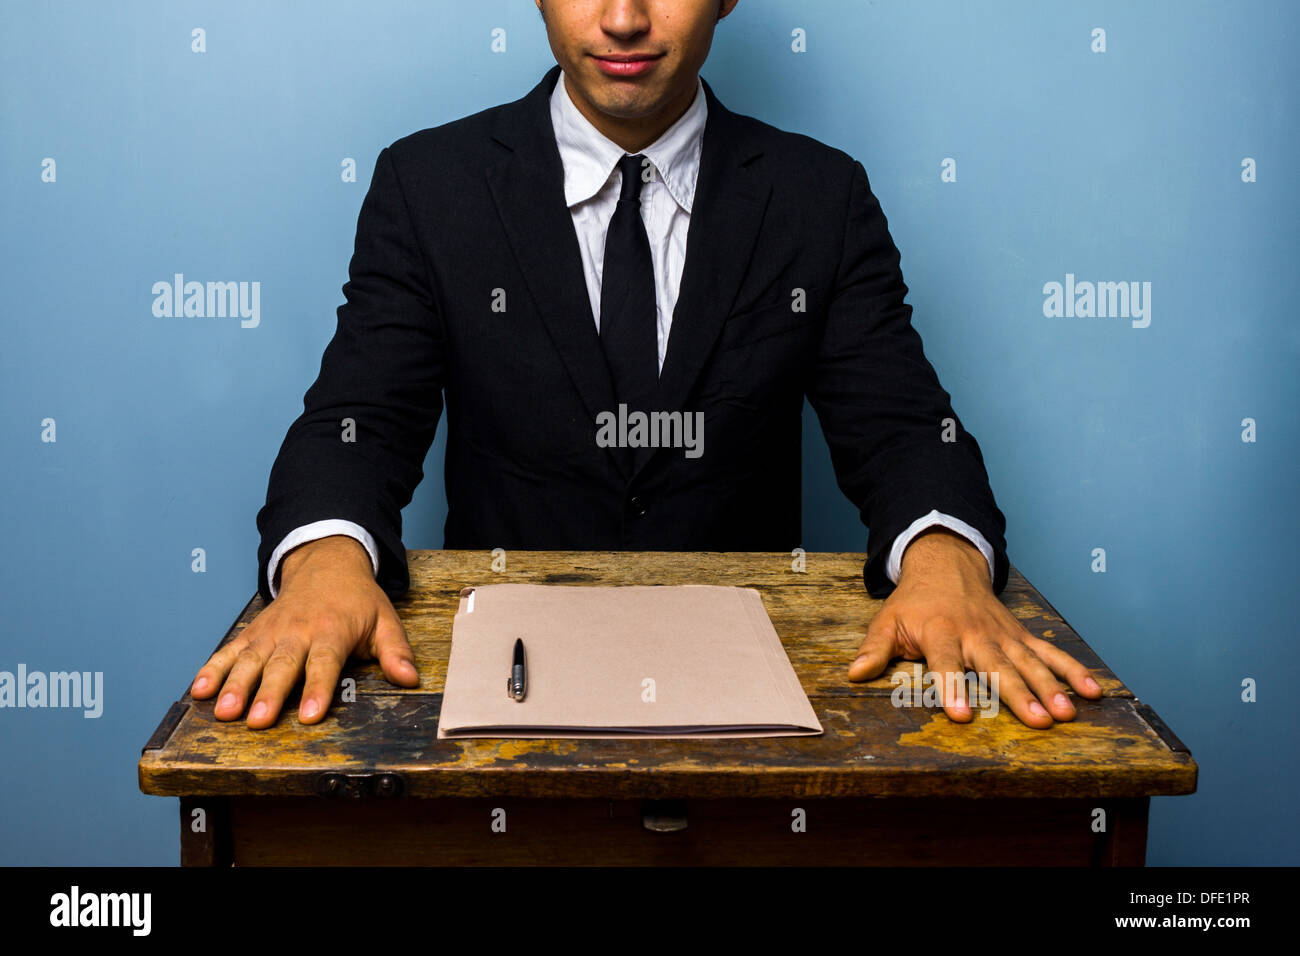 Young businessman has just signed important deal - Stock Image